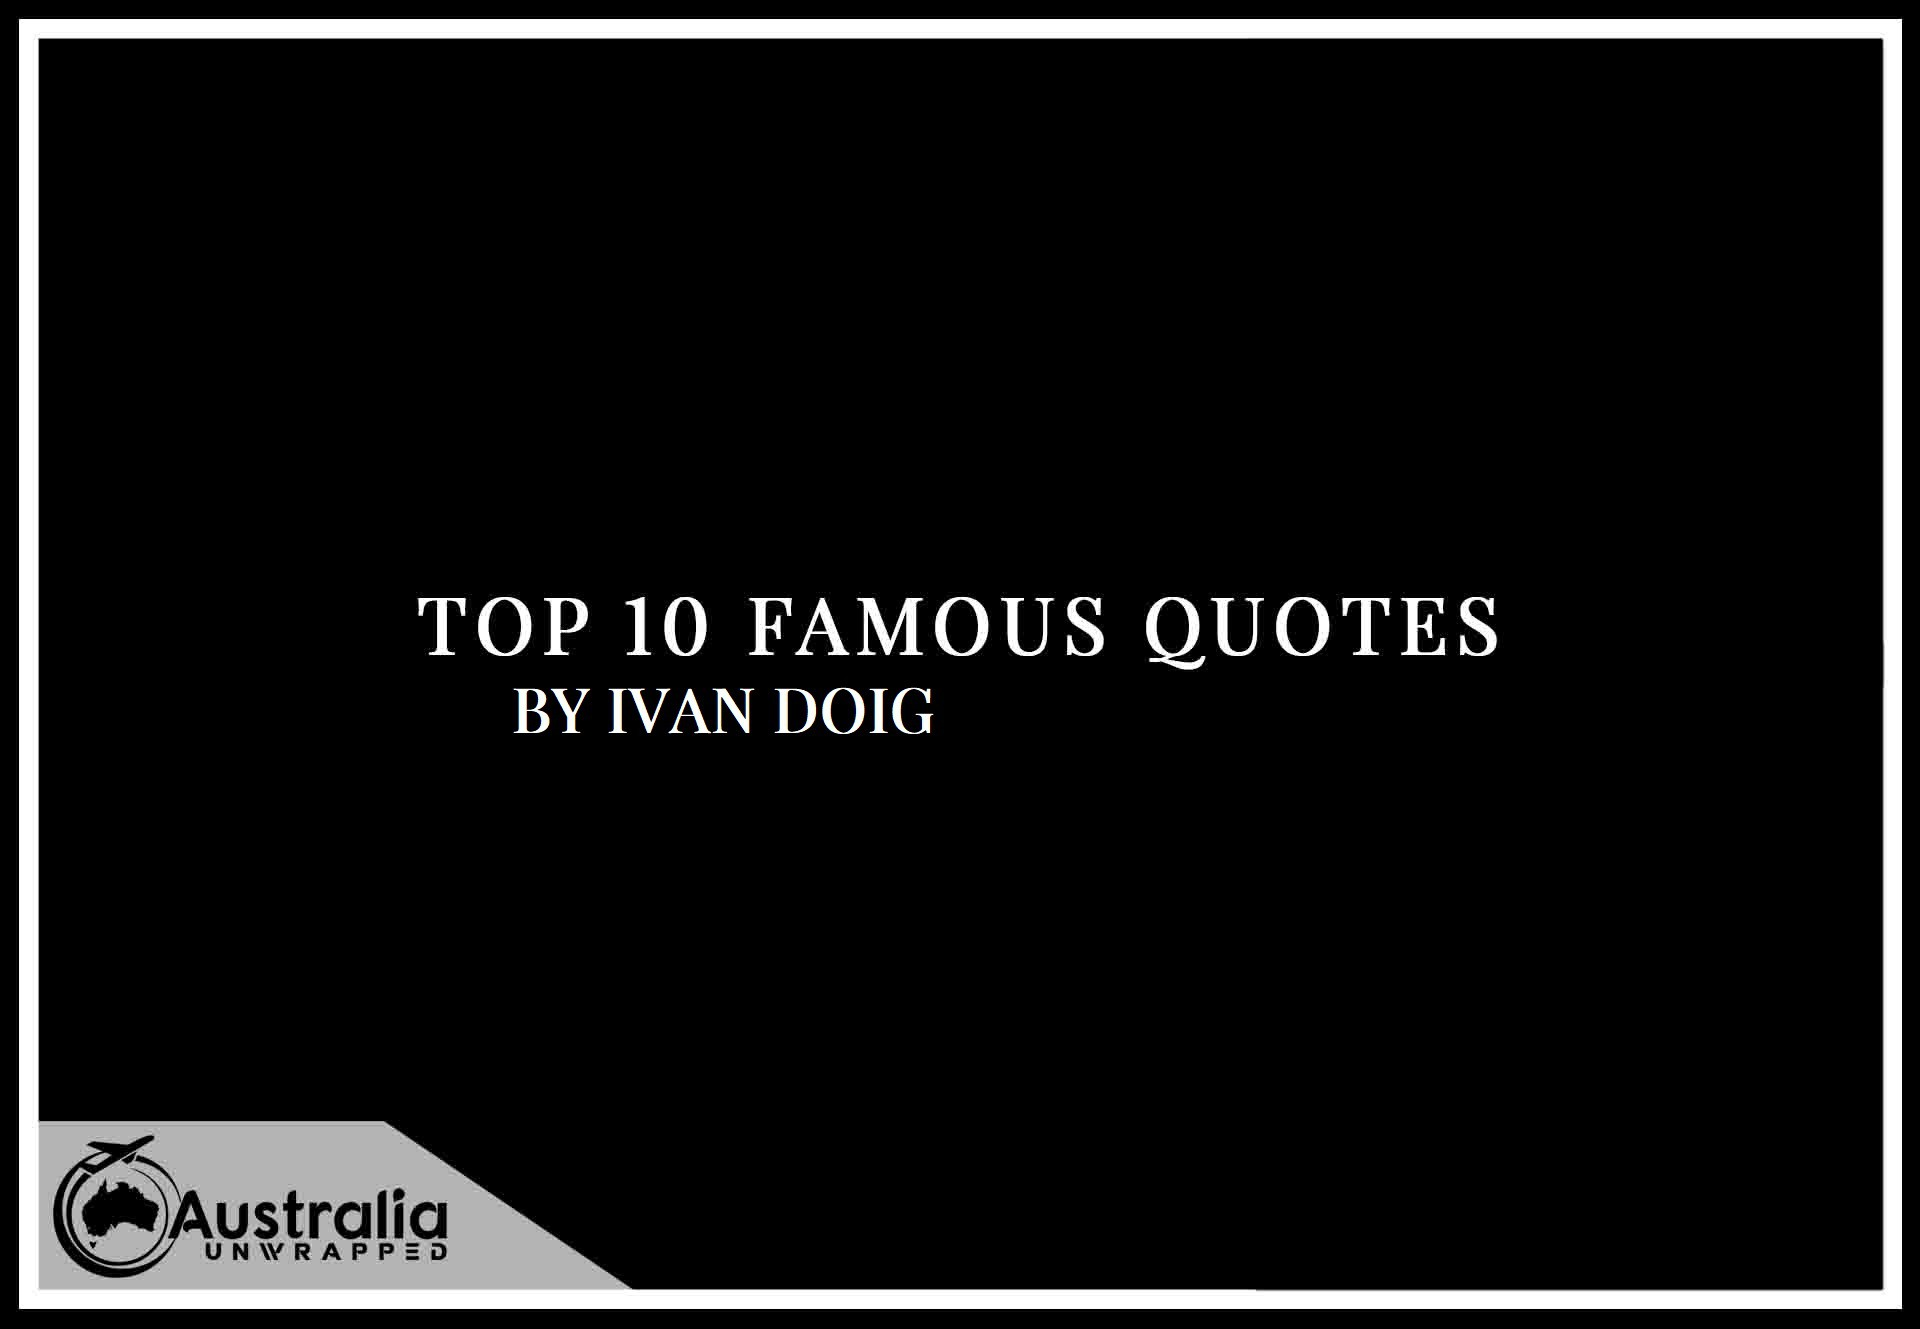 Top 10 Famous Quotes by Author Ivan Doig